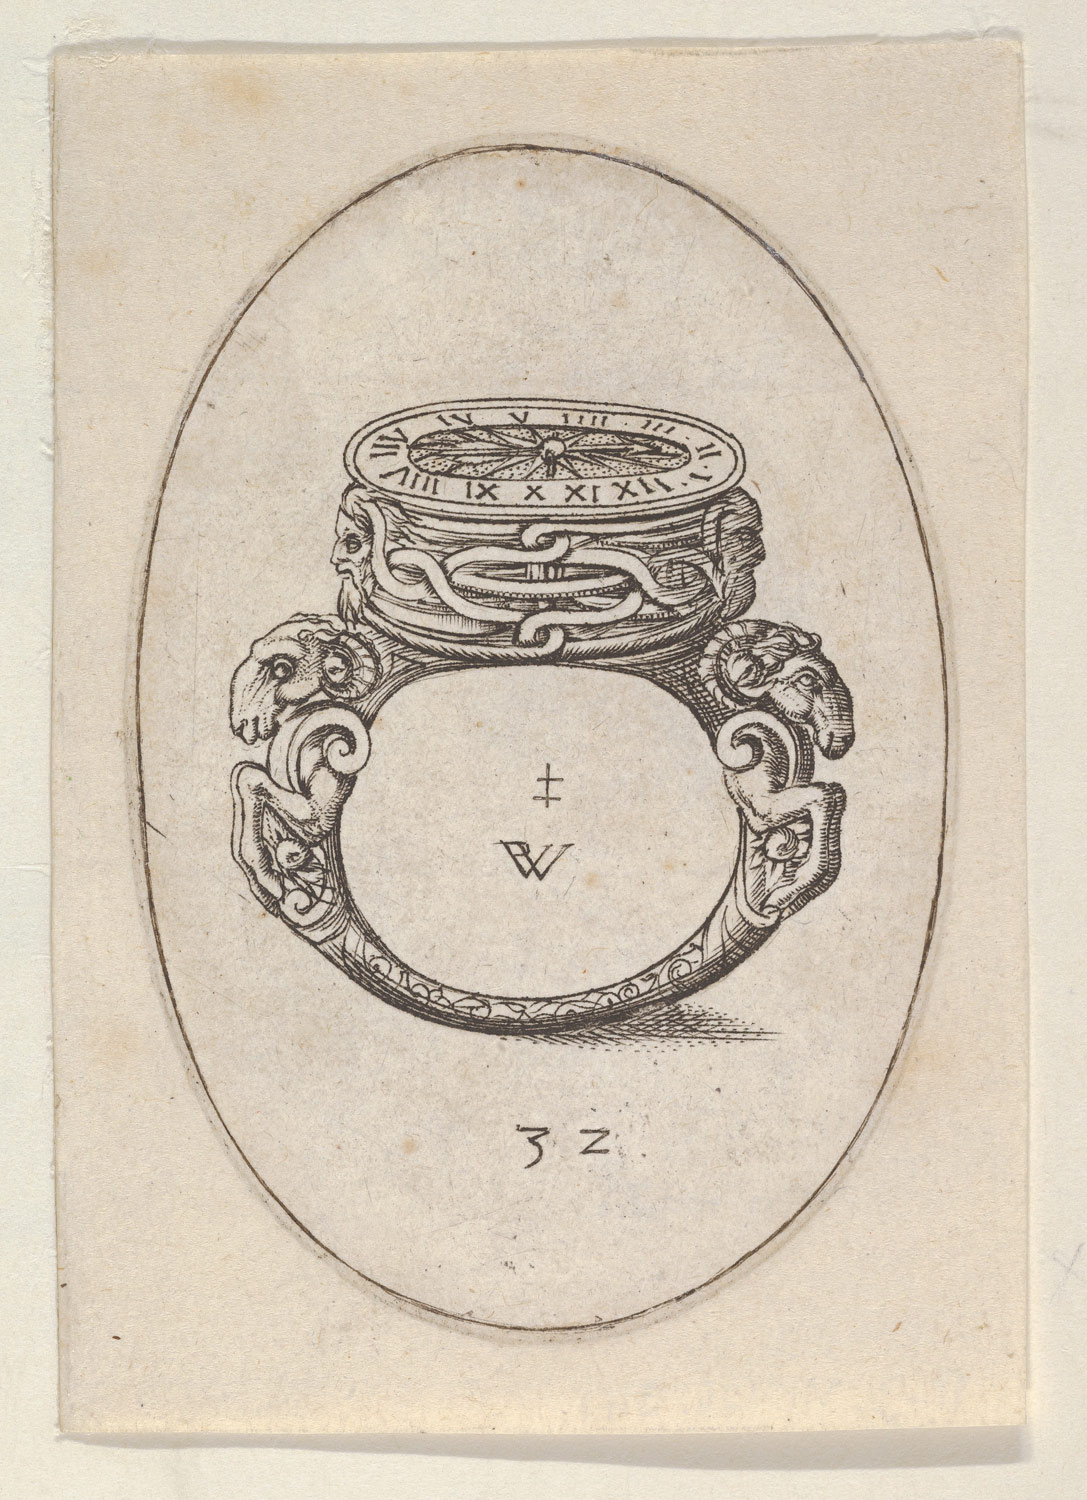 Design for a Ring Watch, from Livre dAneaux dOrfevrerie